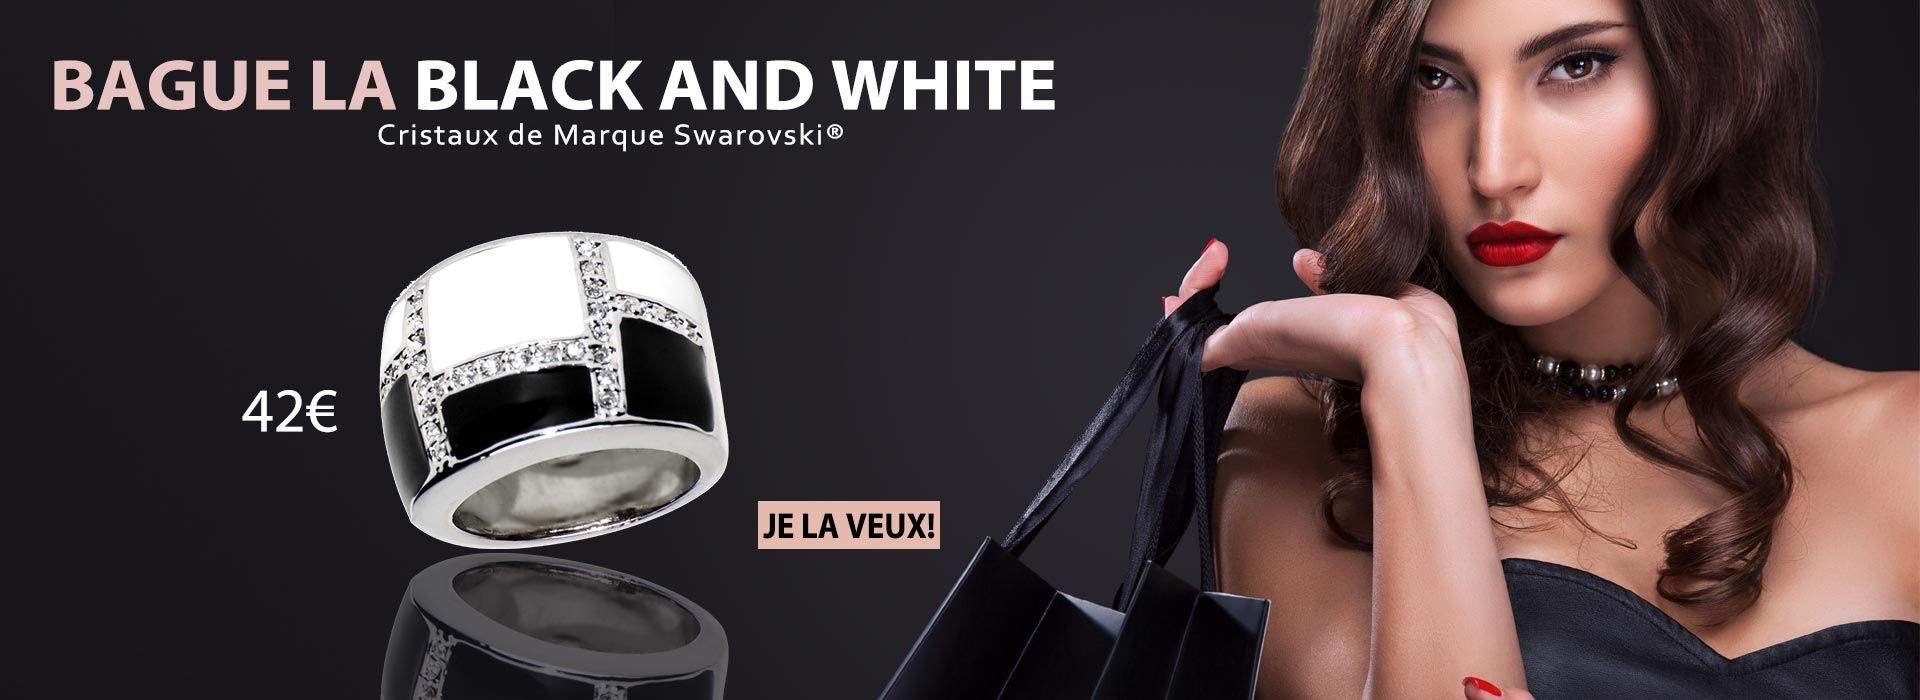 bague la black and white